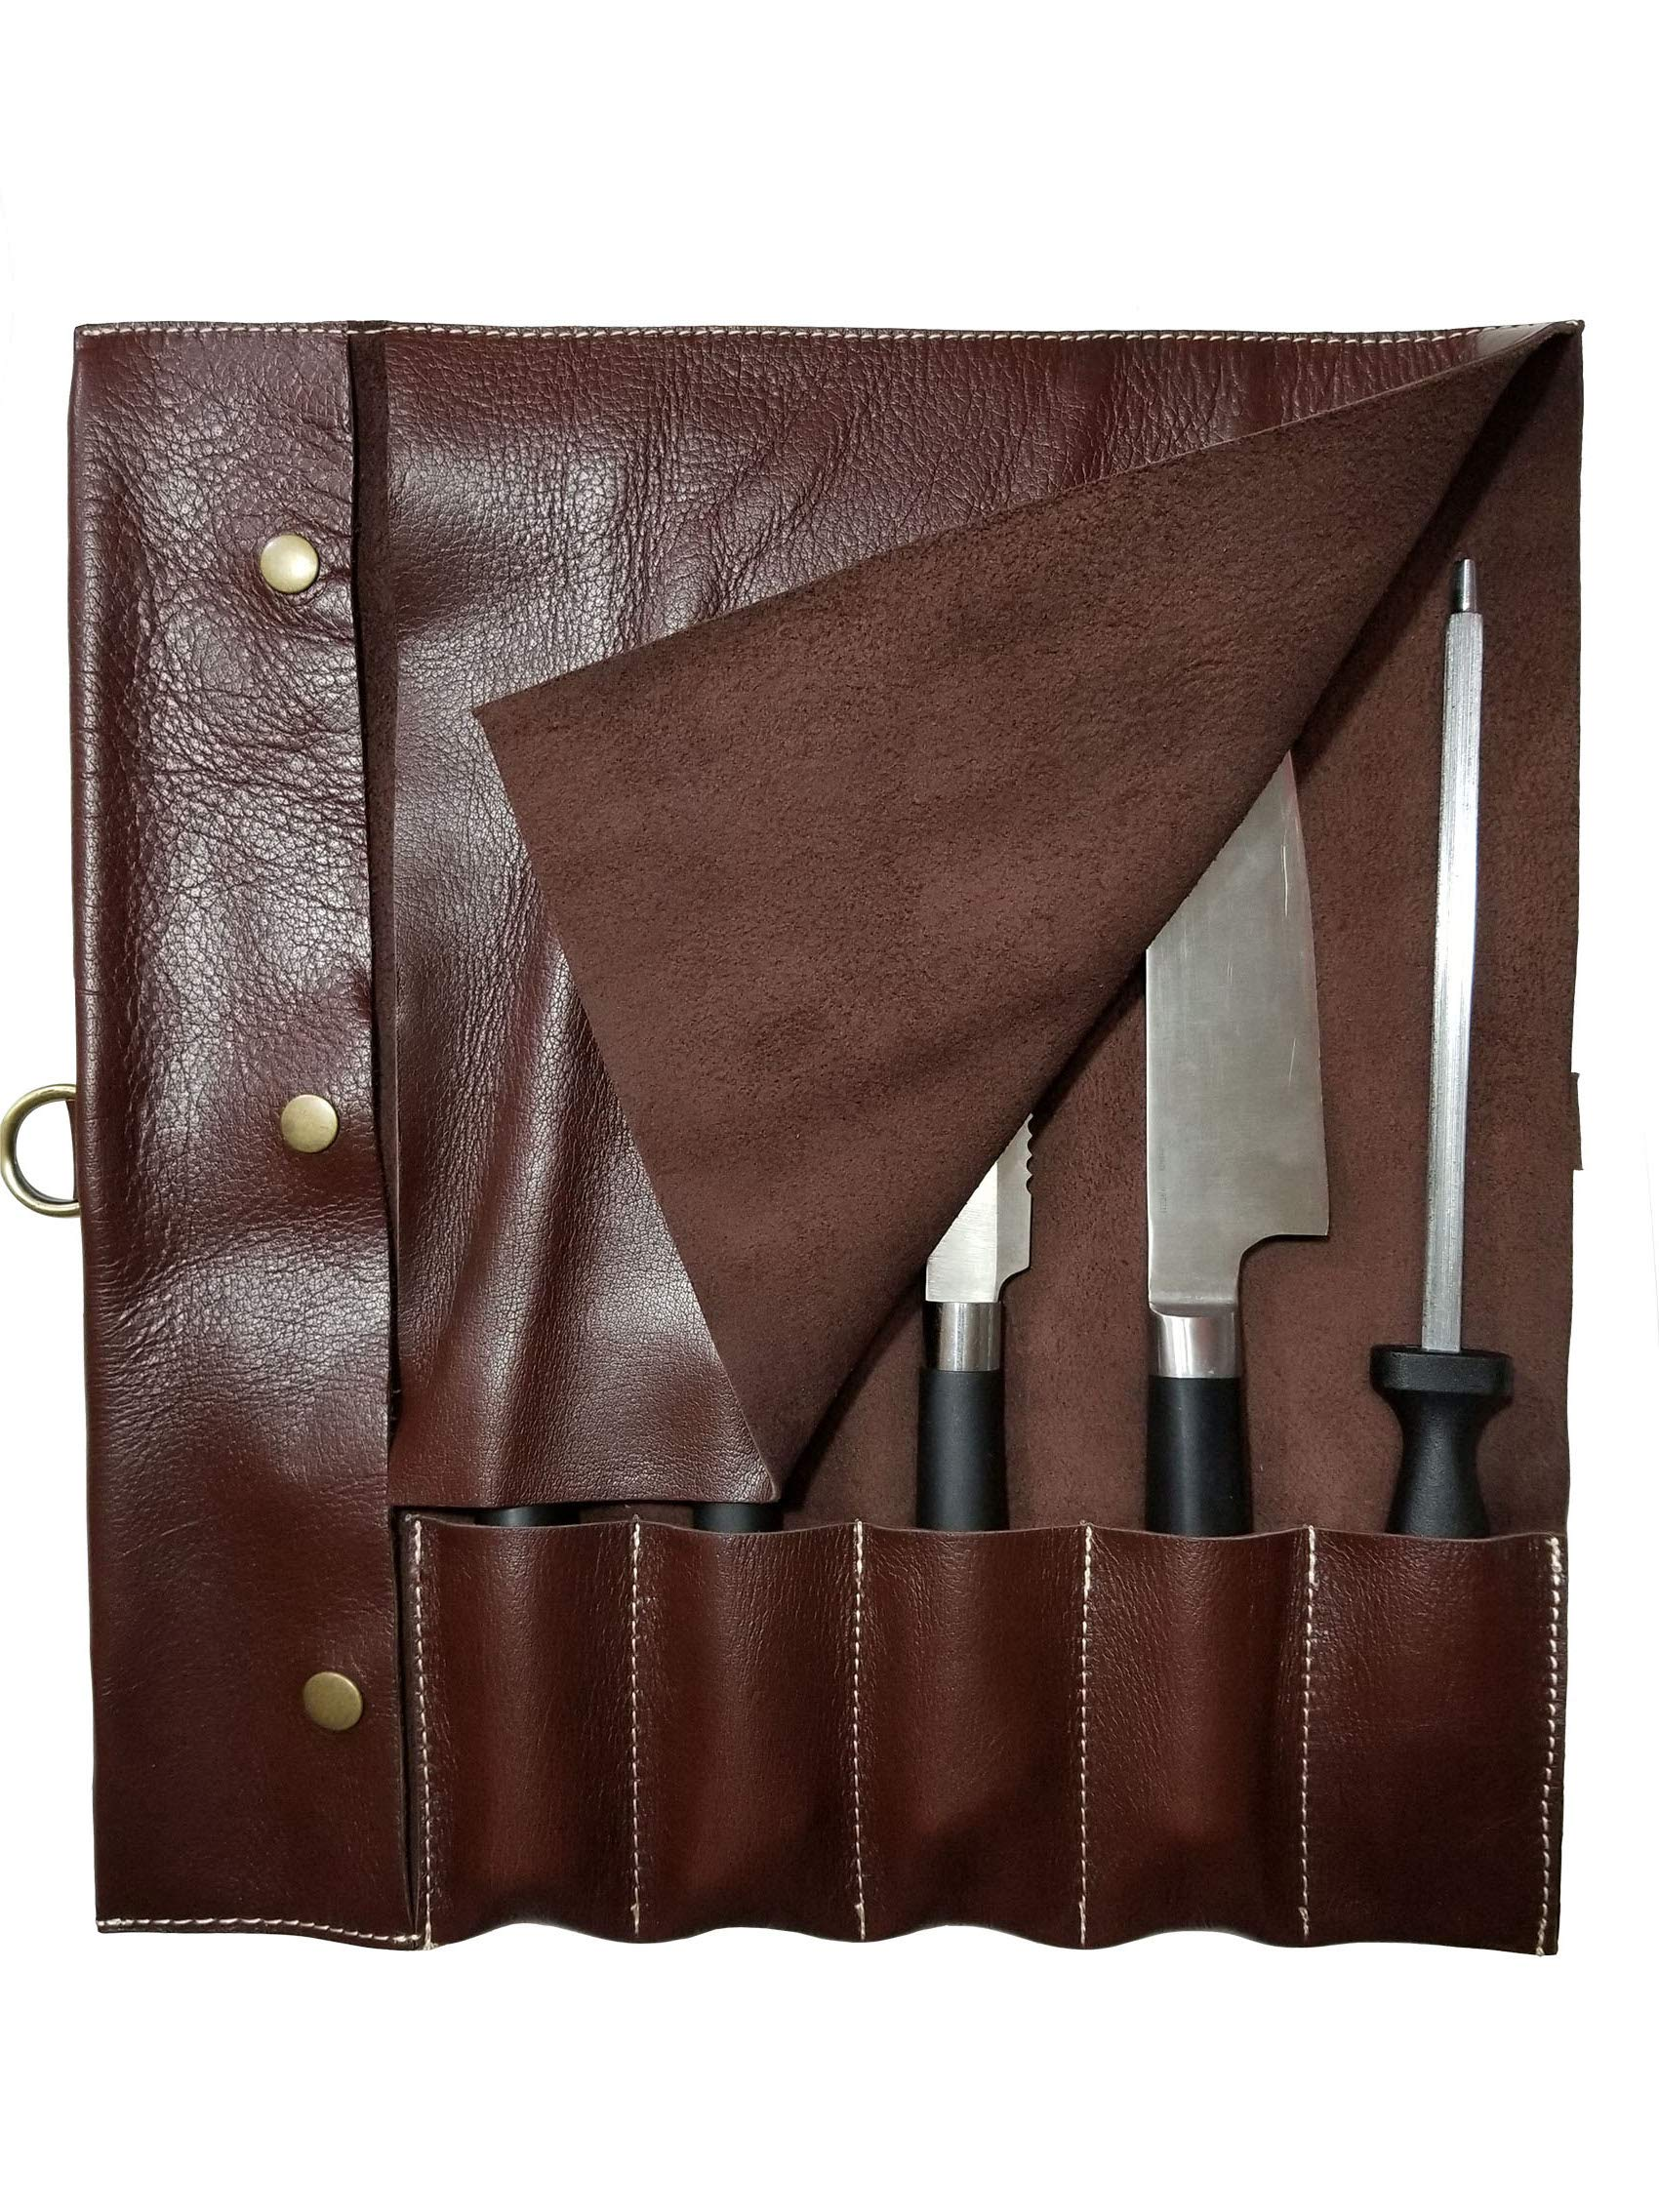 PROFESSIONAL CHEF Lightweight Genuine Premium MAROON Leather Chef Knife Bag/Knife Roll 5 Pockets SpaceKB06